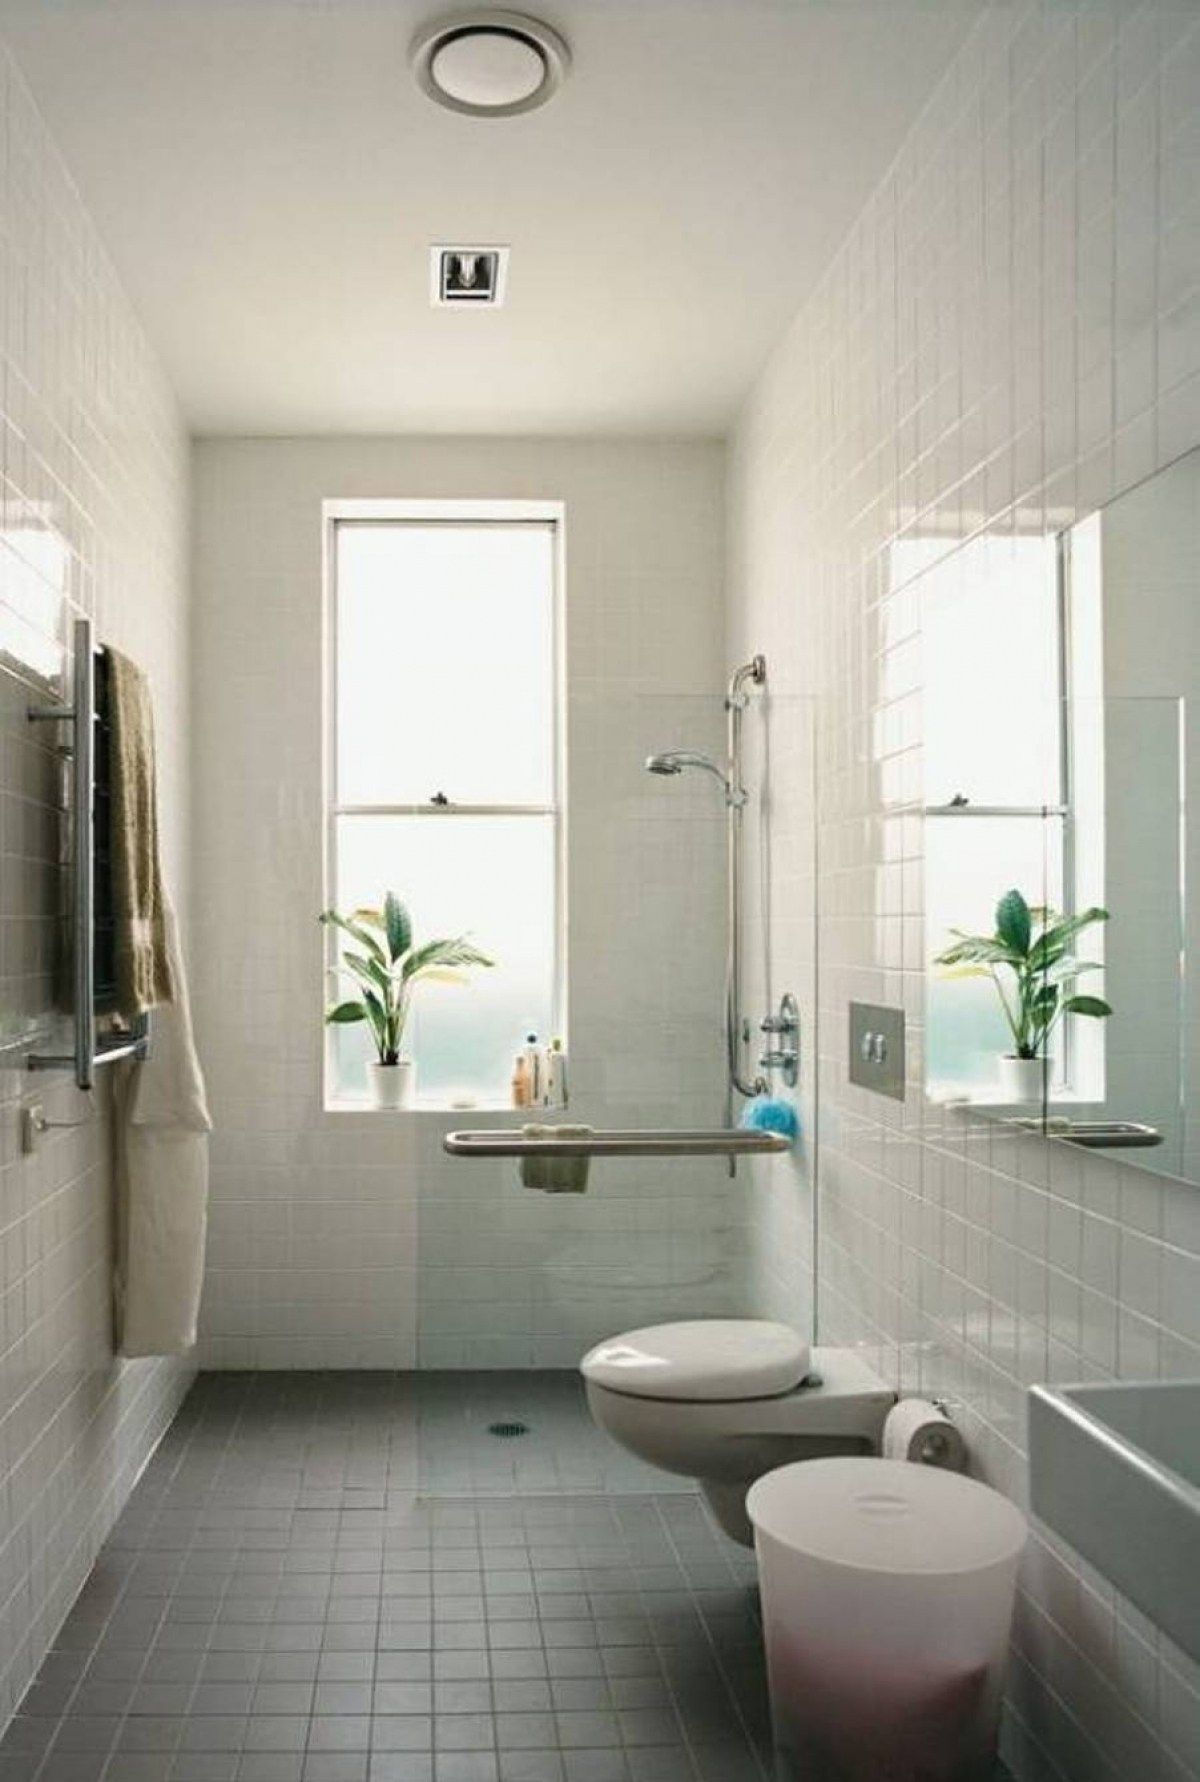 Bathroom small narrow bathroom ideas tub shower popular narrow bathroom ideas tub narrow Bathroom design ideas for a small bathroom